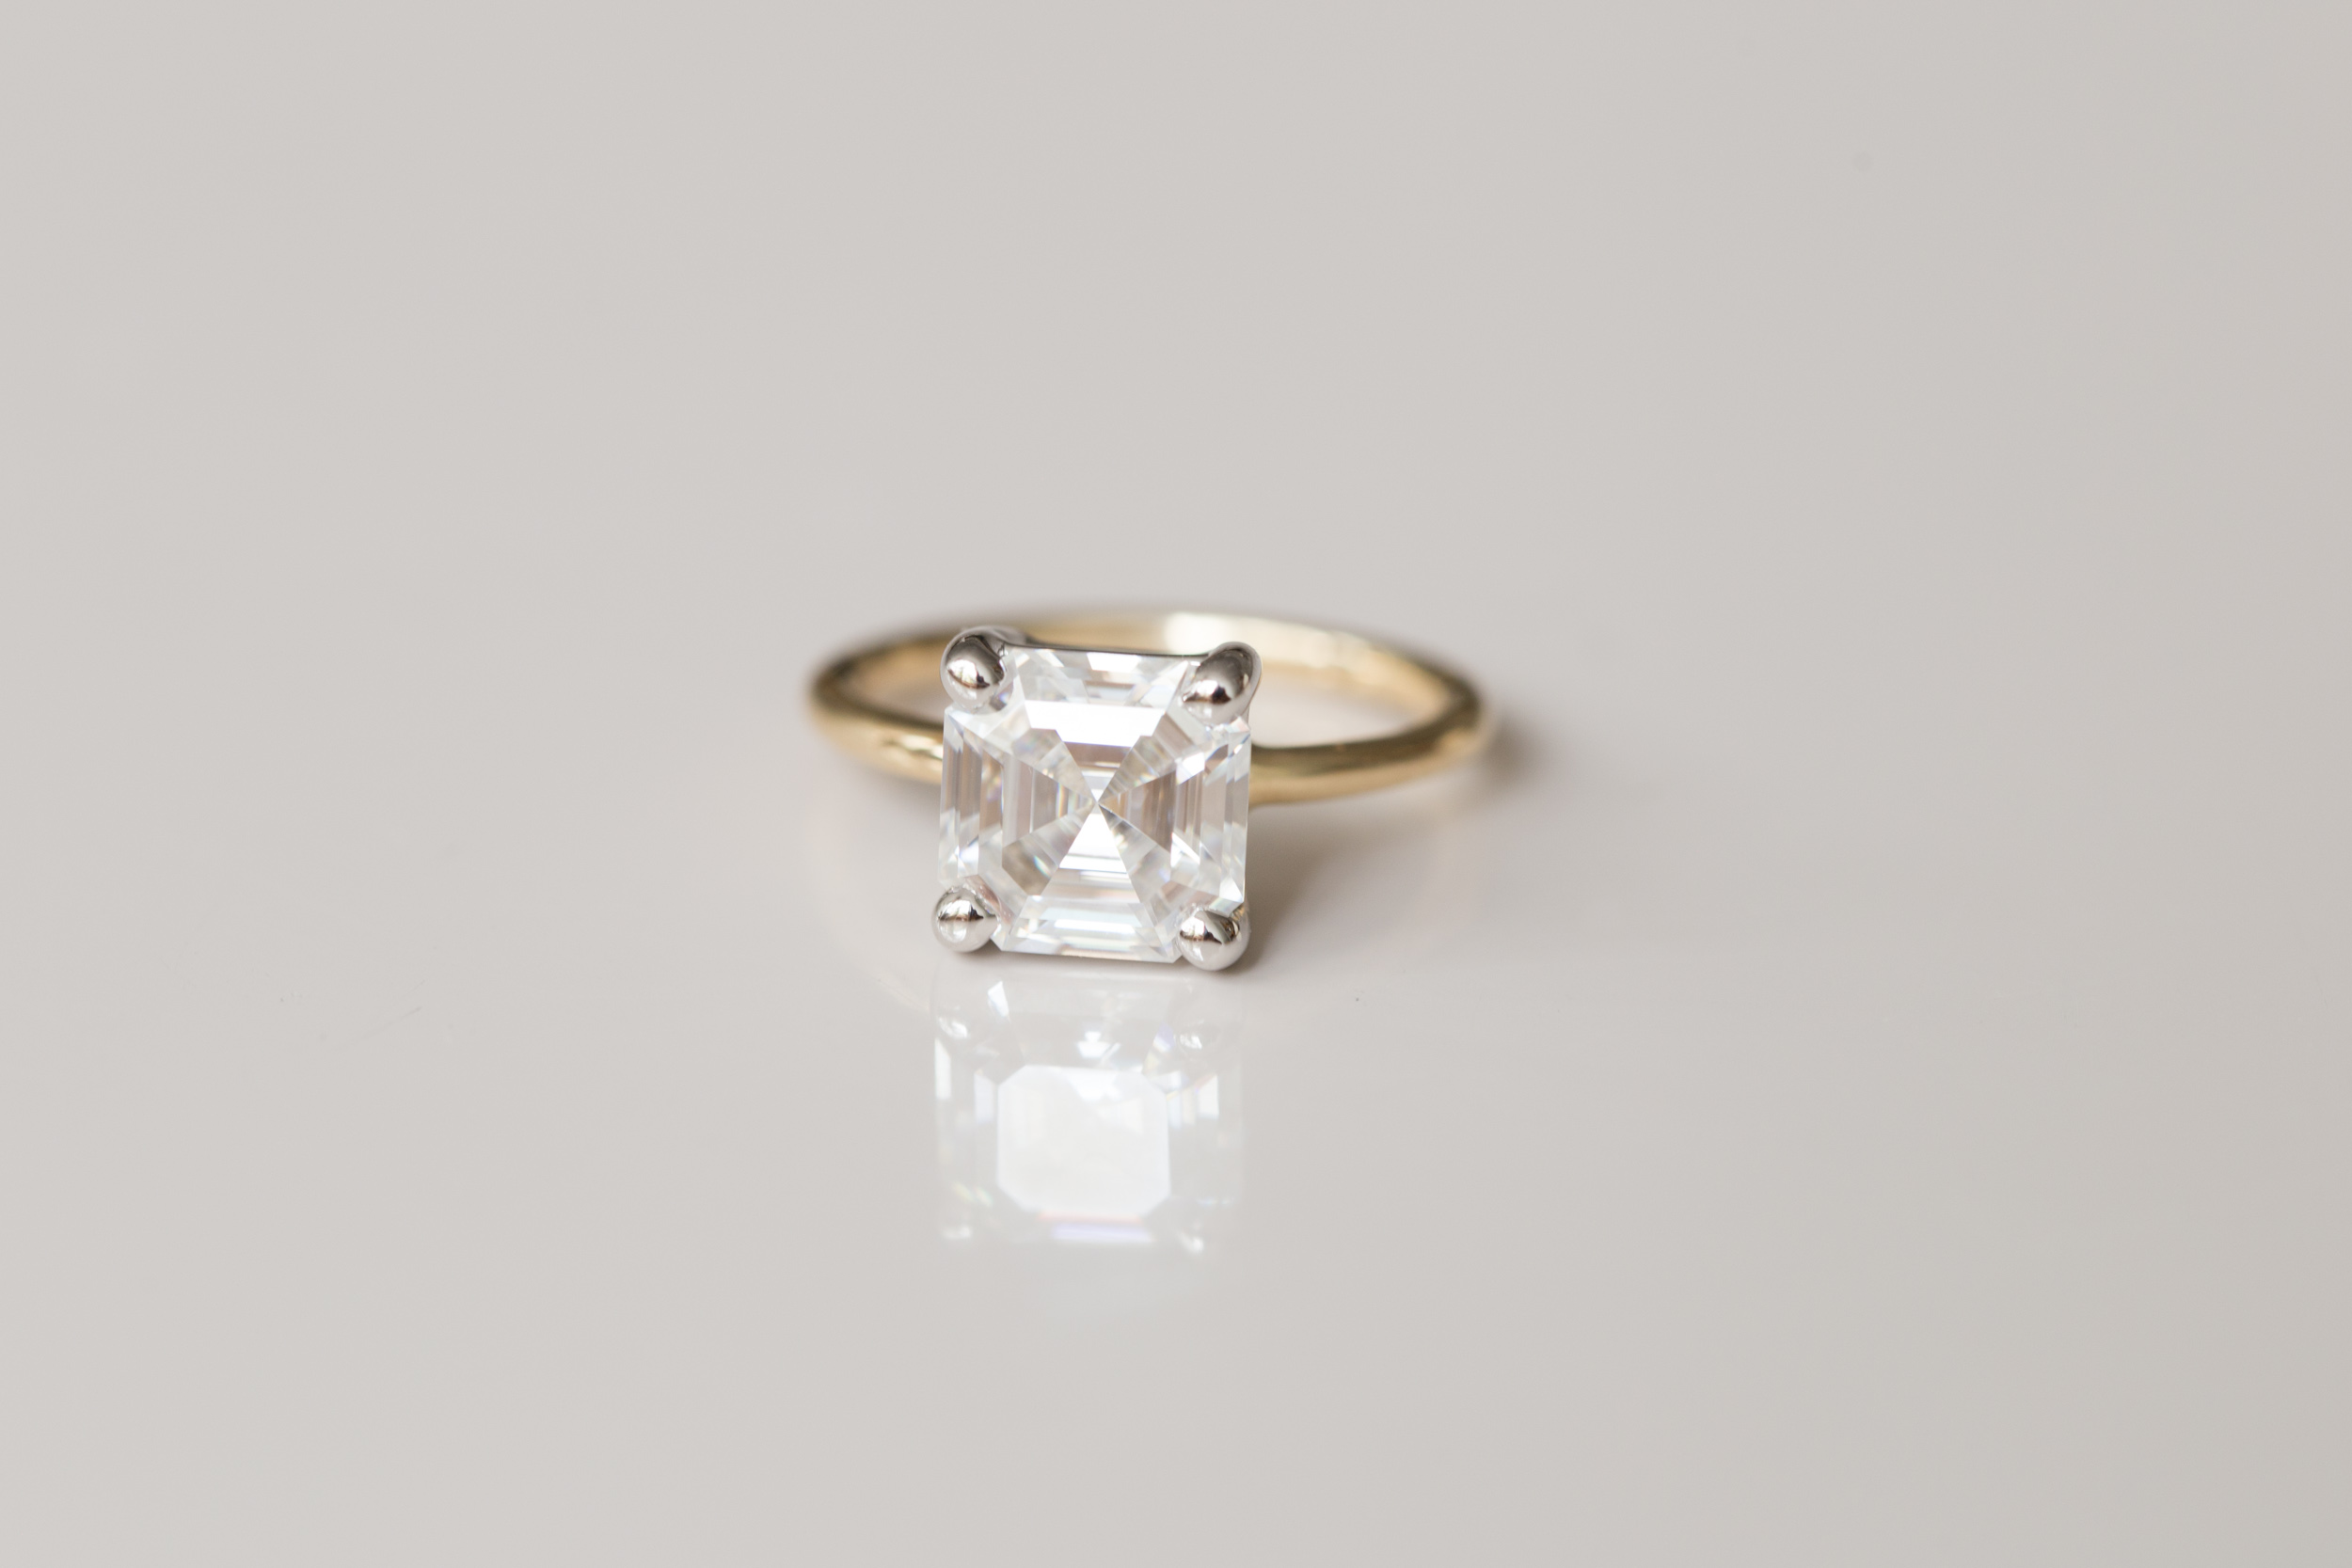 Asscher Cut Moissanite Solitaire Engagement Ring | 14k Recycled Gold —  Mineralogy